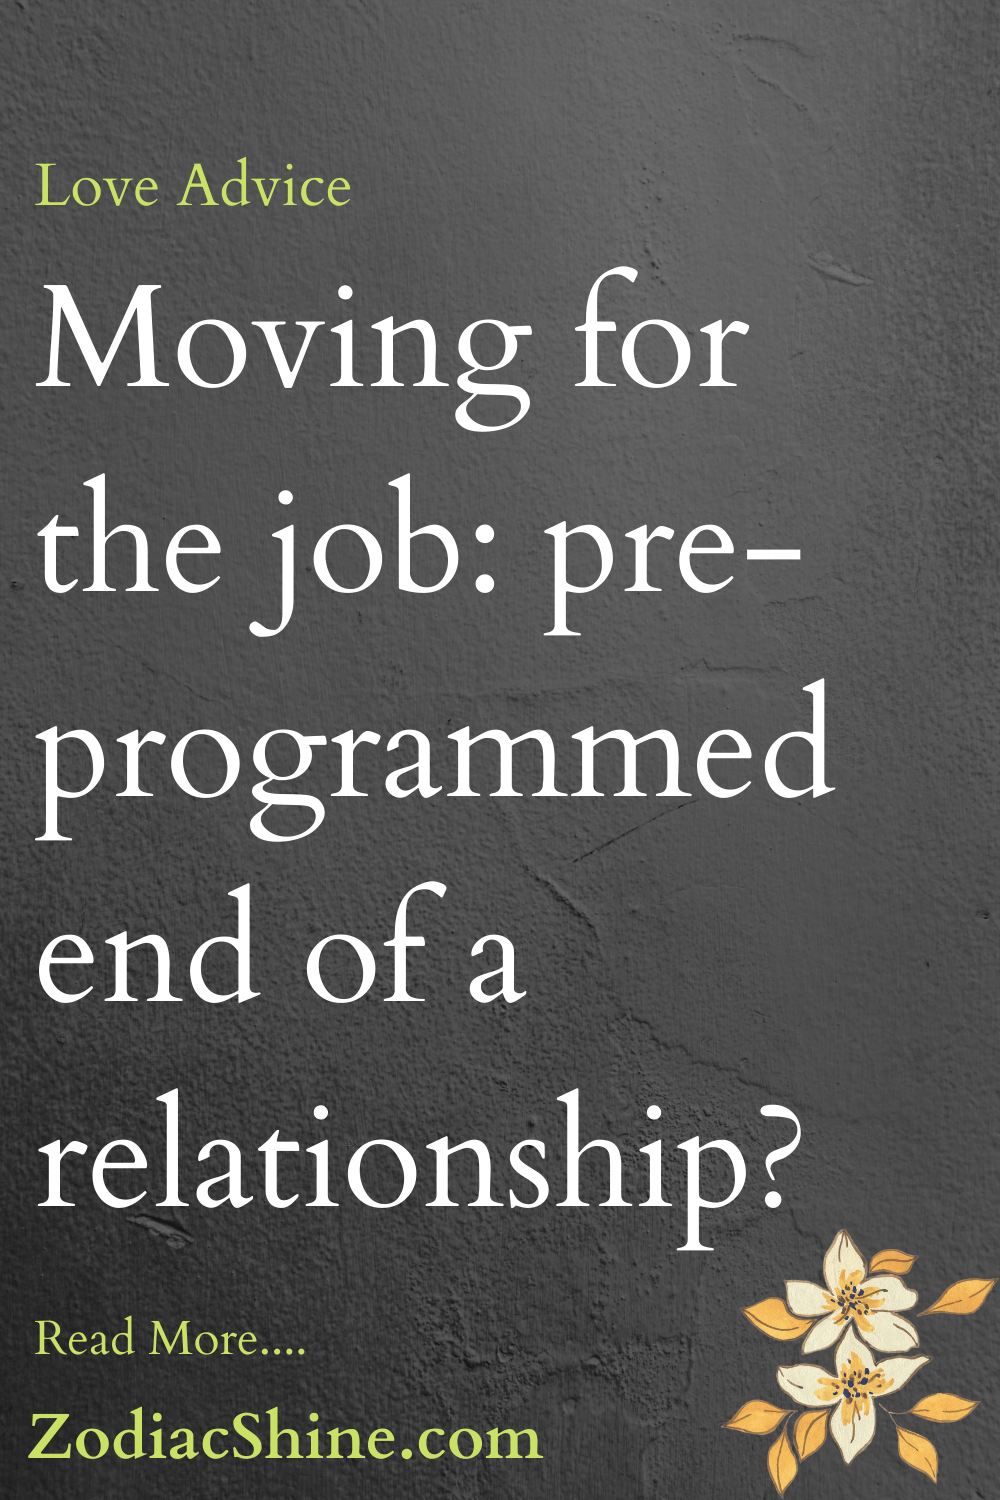 Moving for the job: pre-programmed end of a relationship?